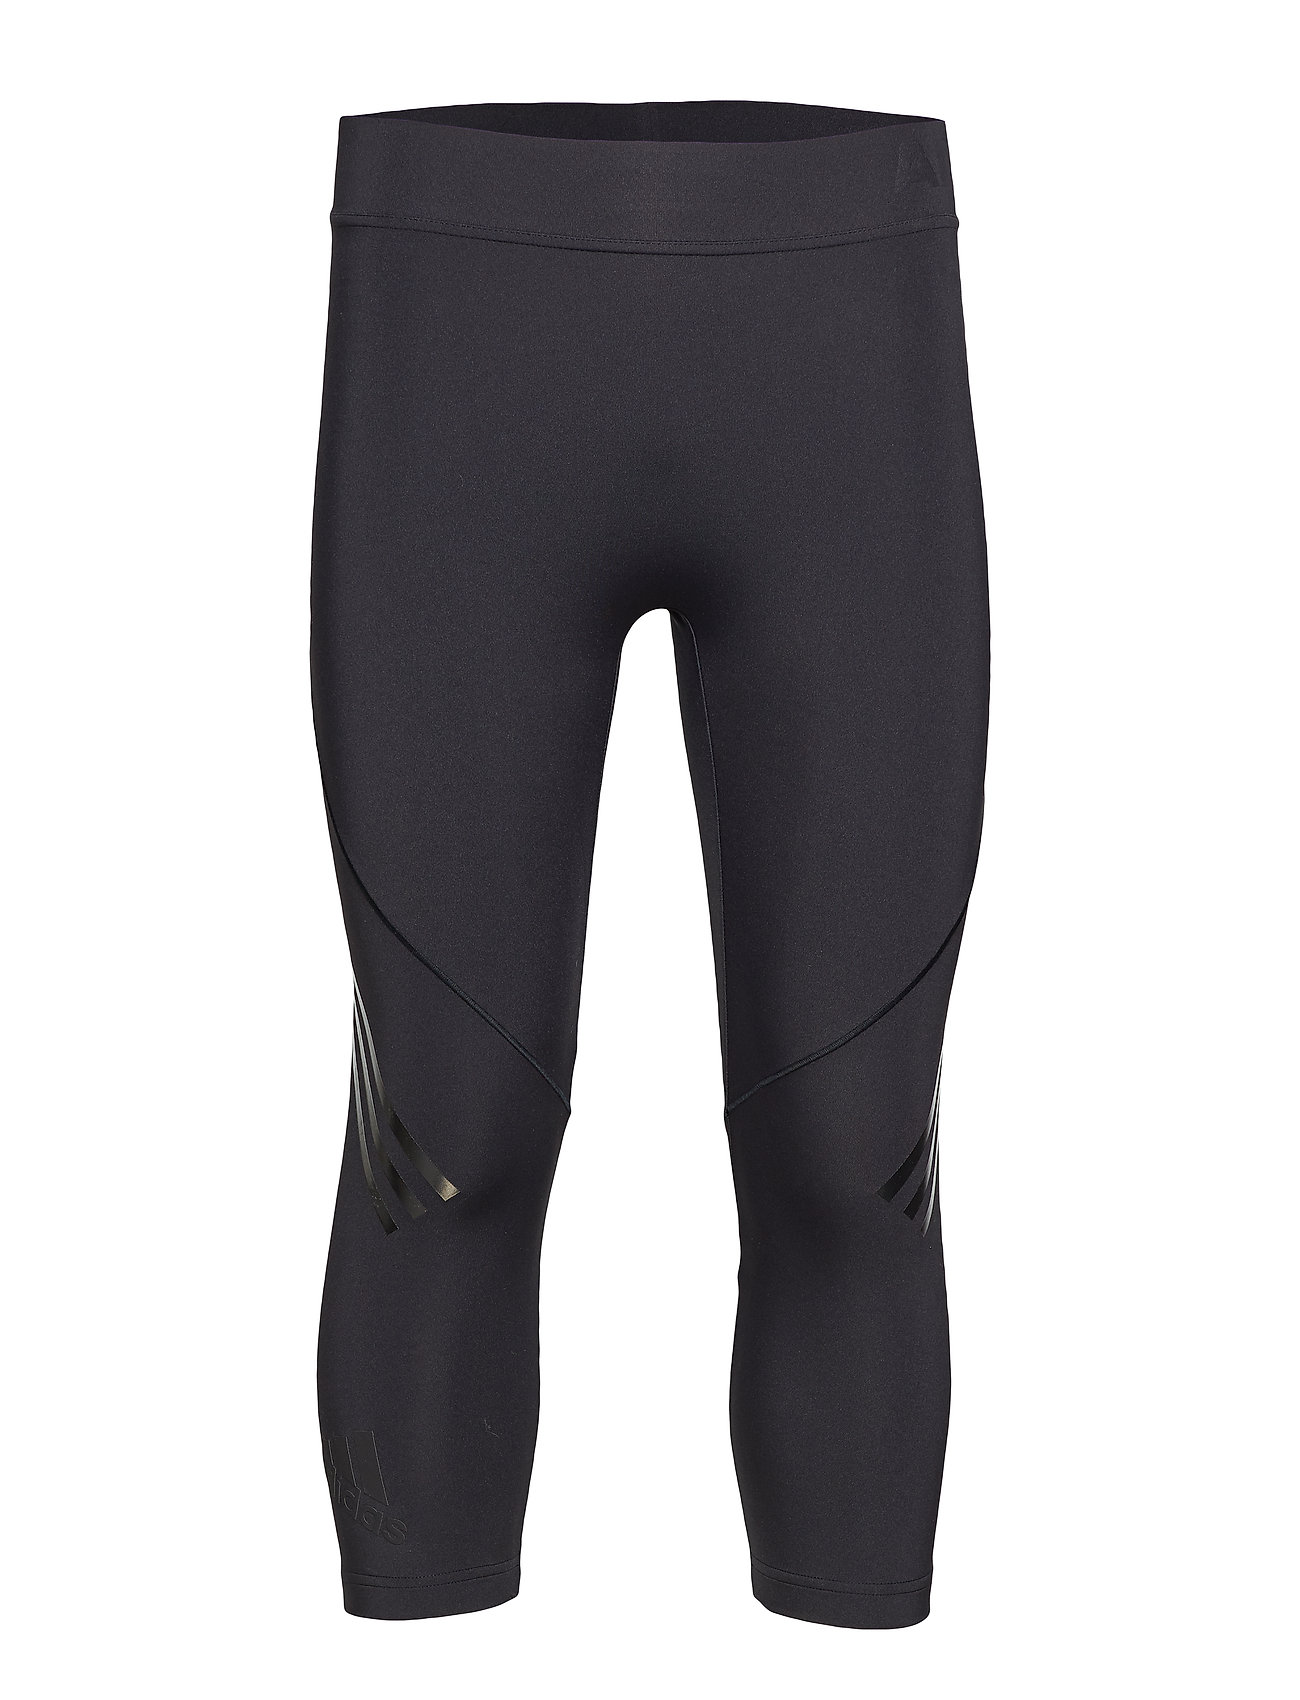 Adidas ASK TEC 34T 3S Tights & shorts